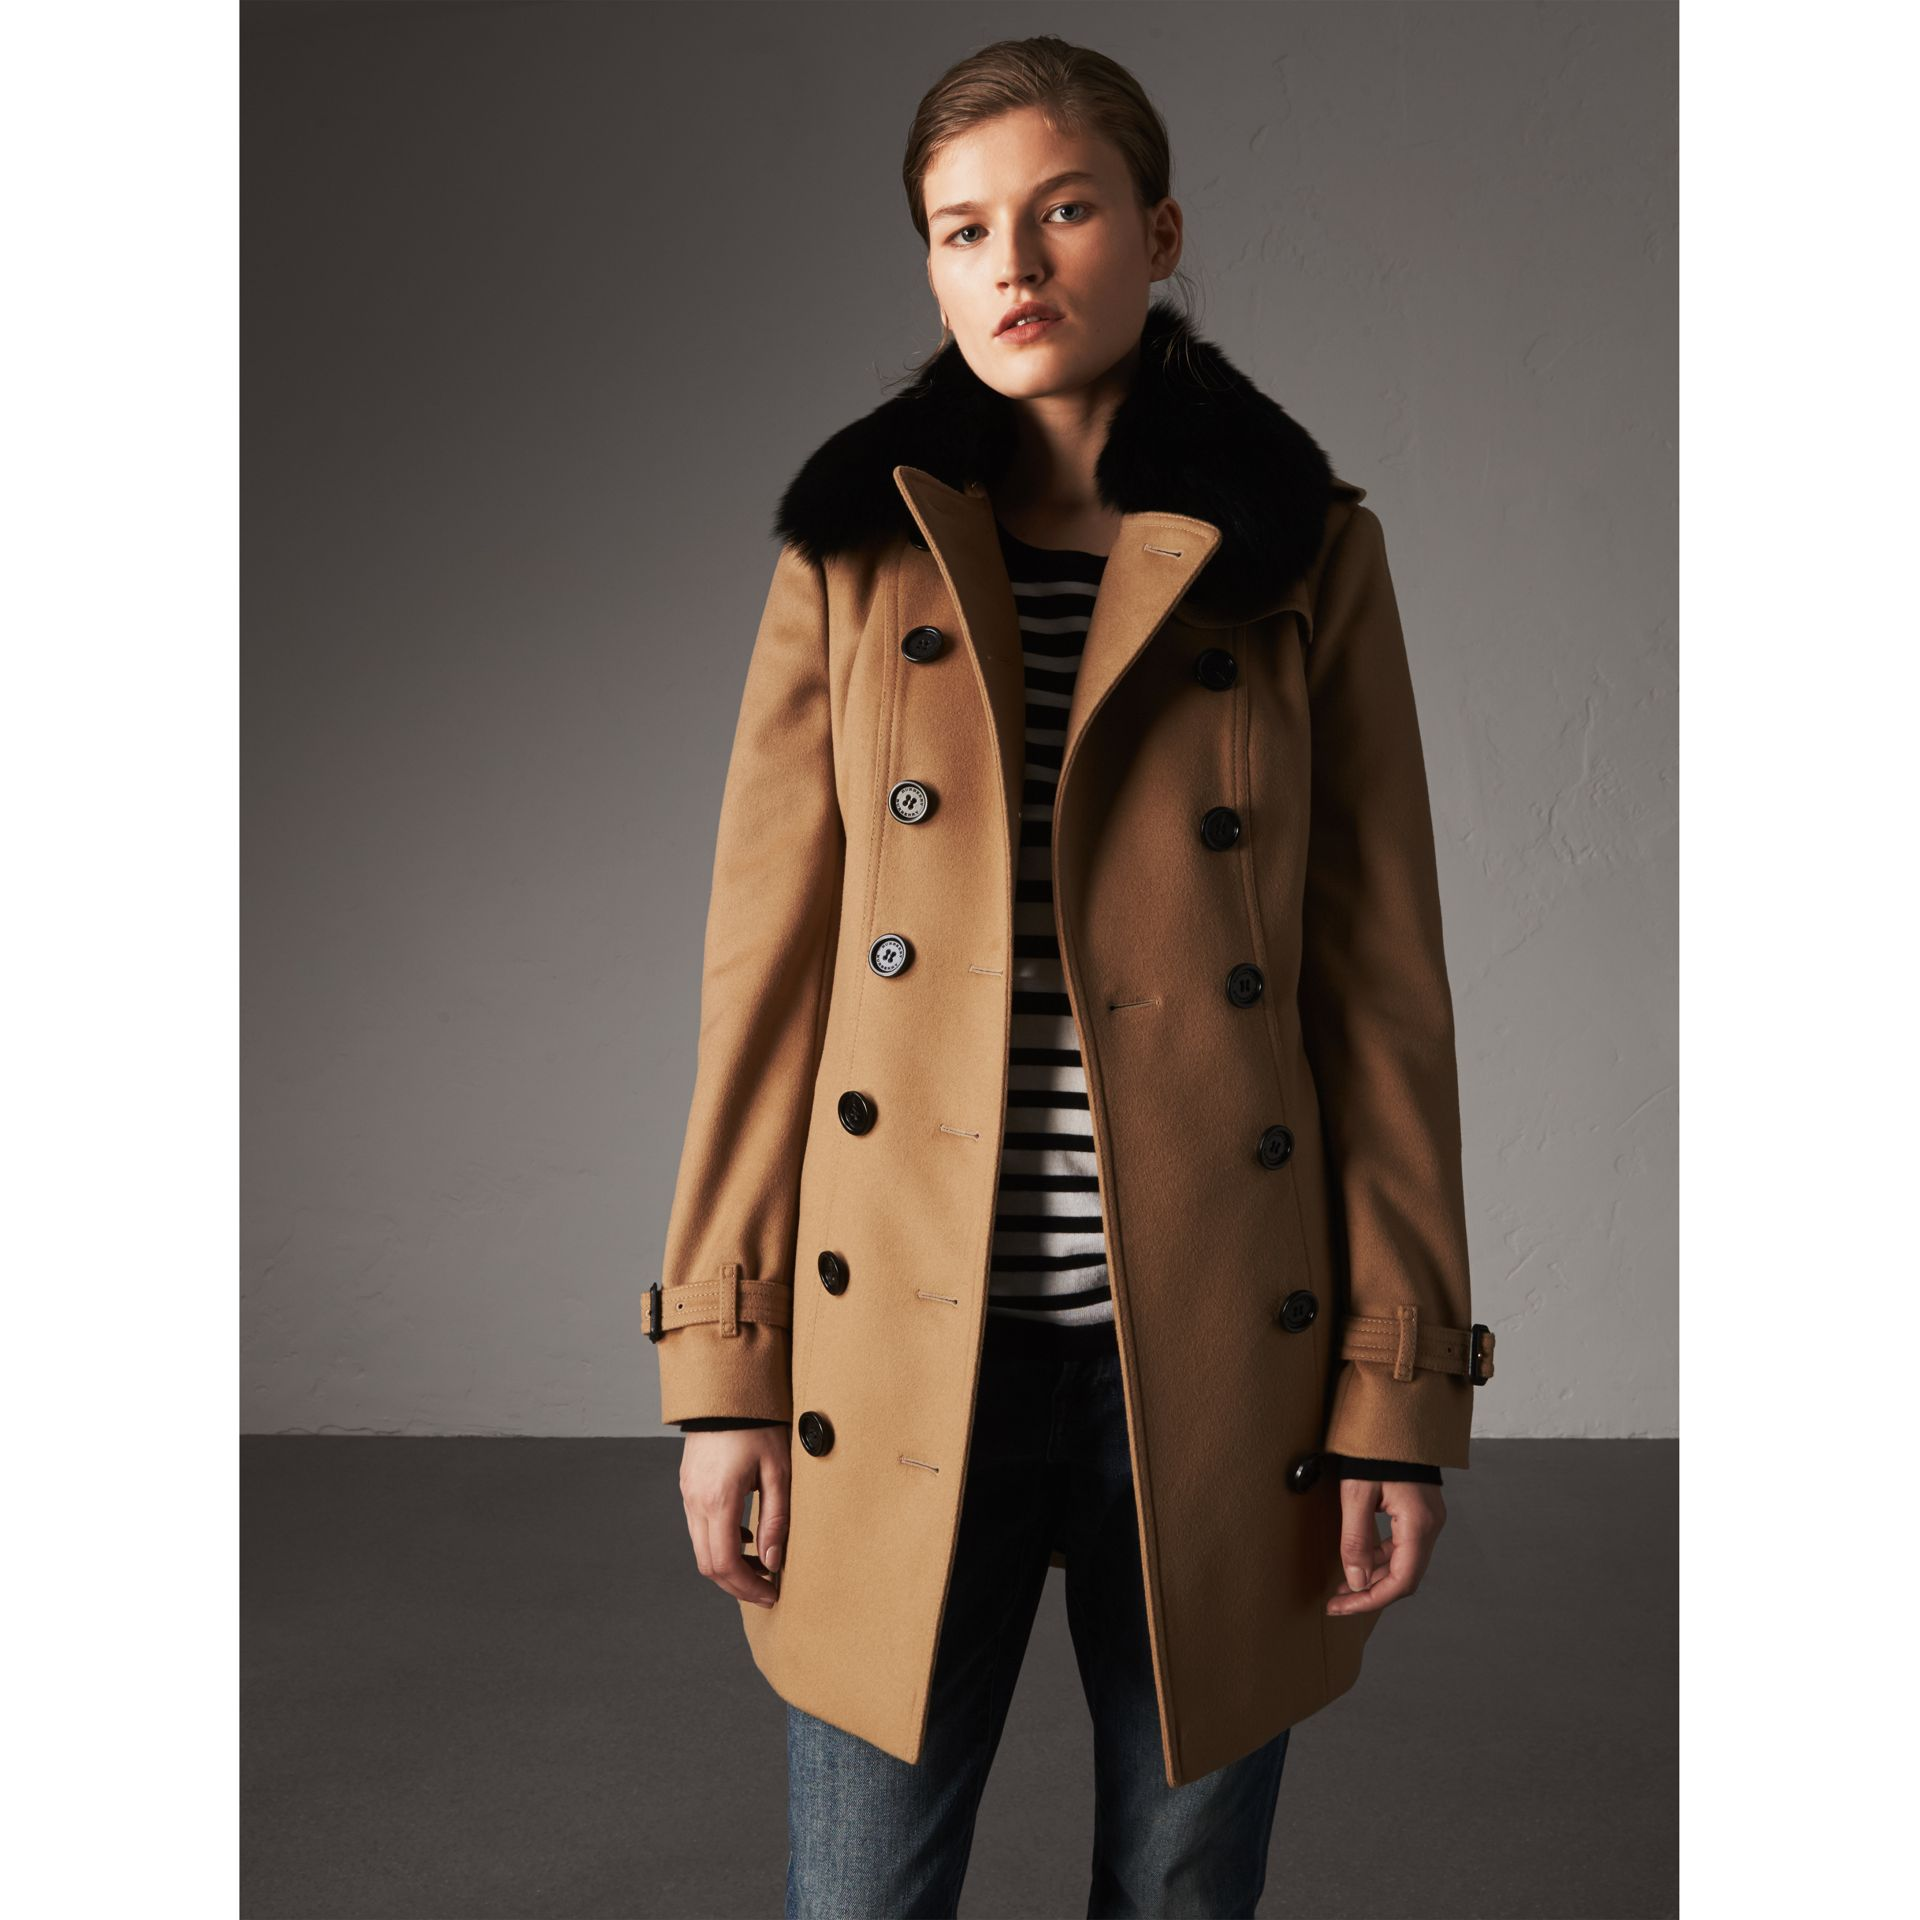 Wool Cashmere Trench Coat with Fur Collar in Camel - Women | Burberry United States - gallery image 0